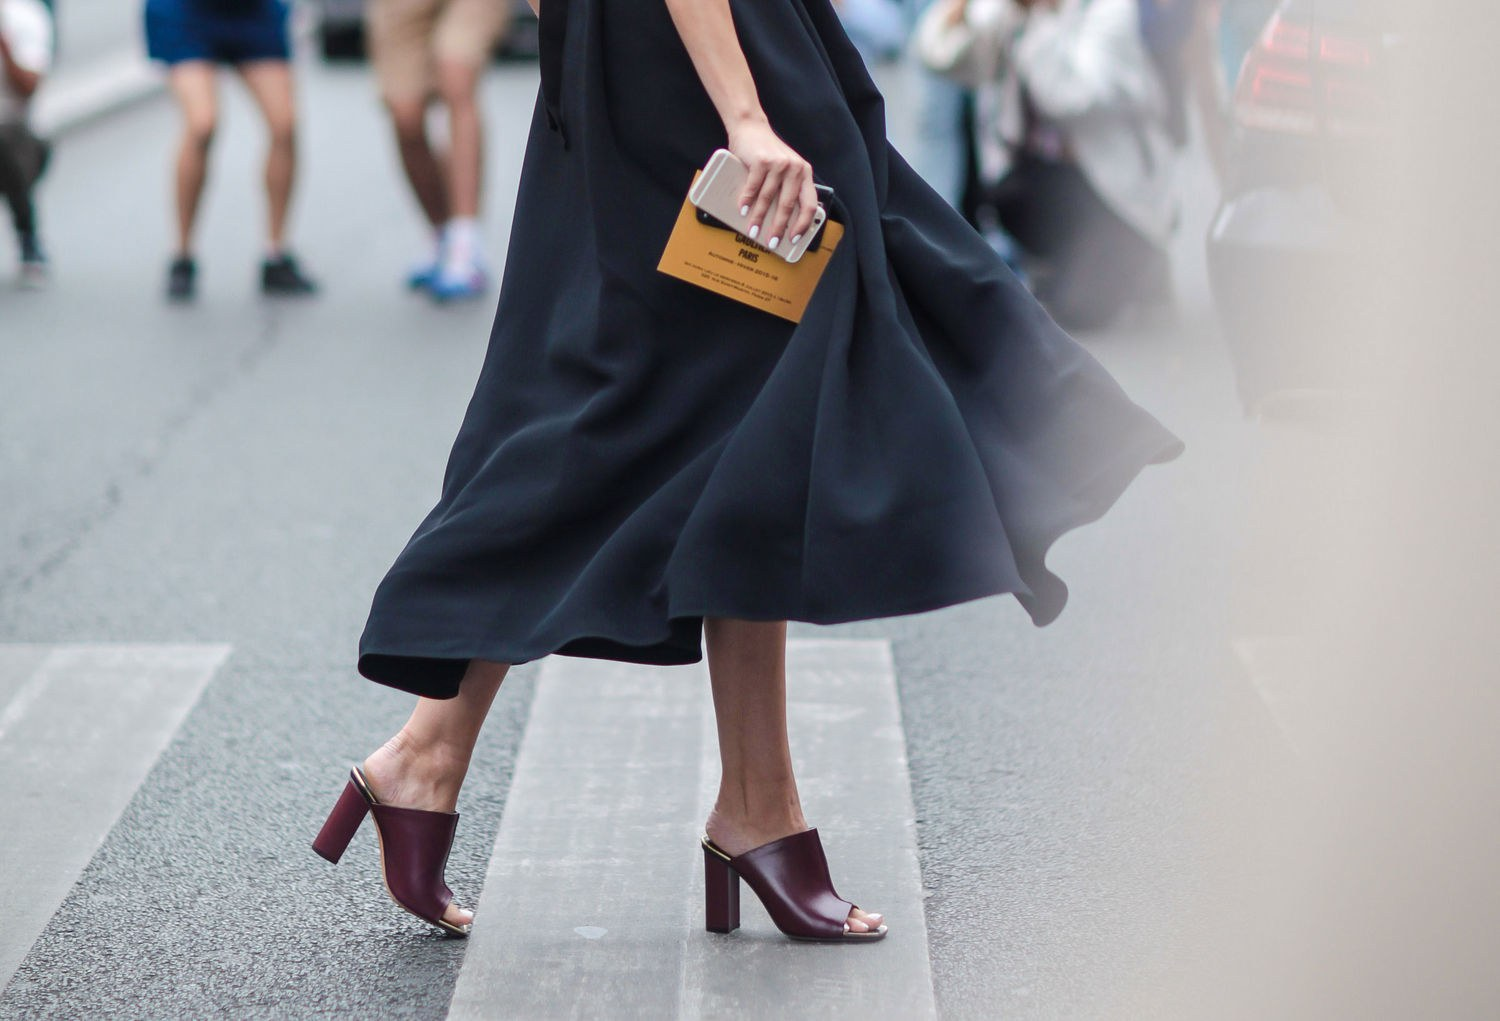 fashion-2015-07-mules-midi-skirt-street-style-main